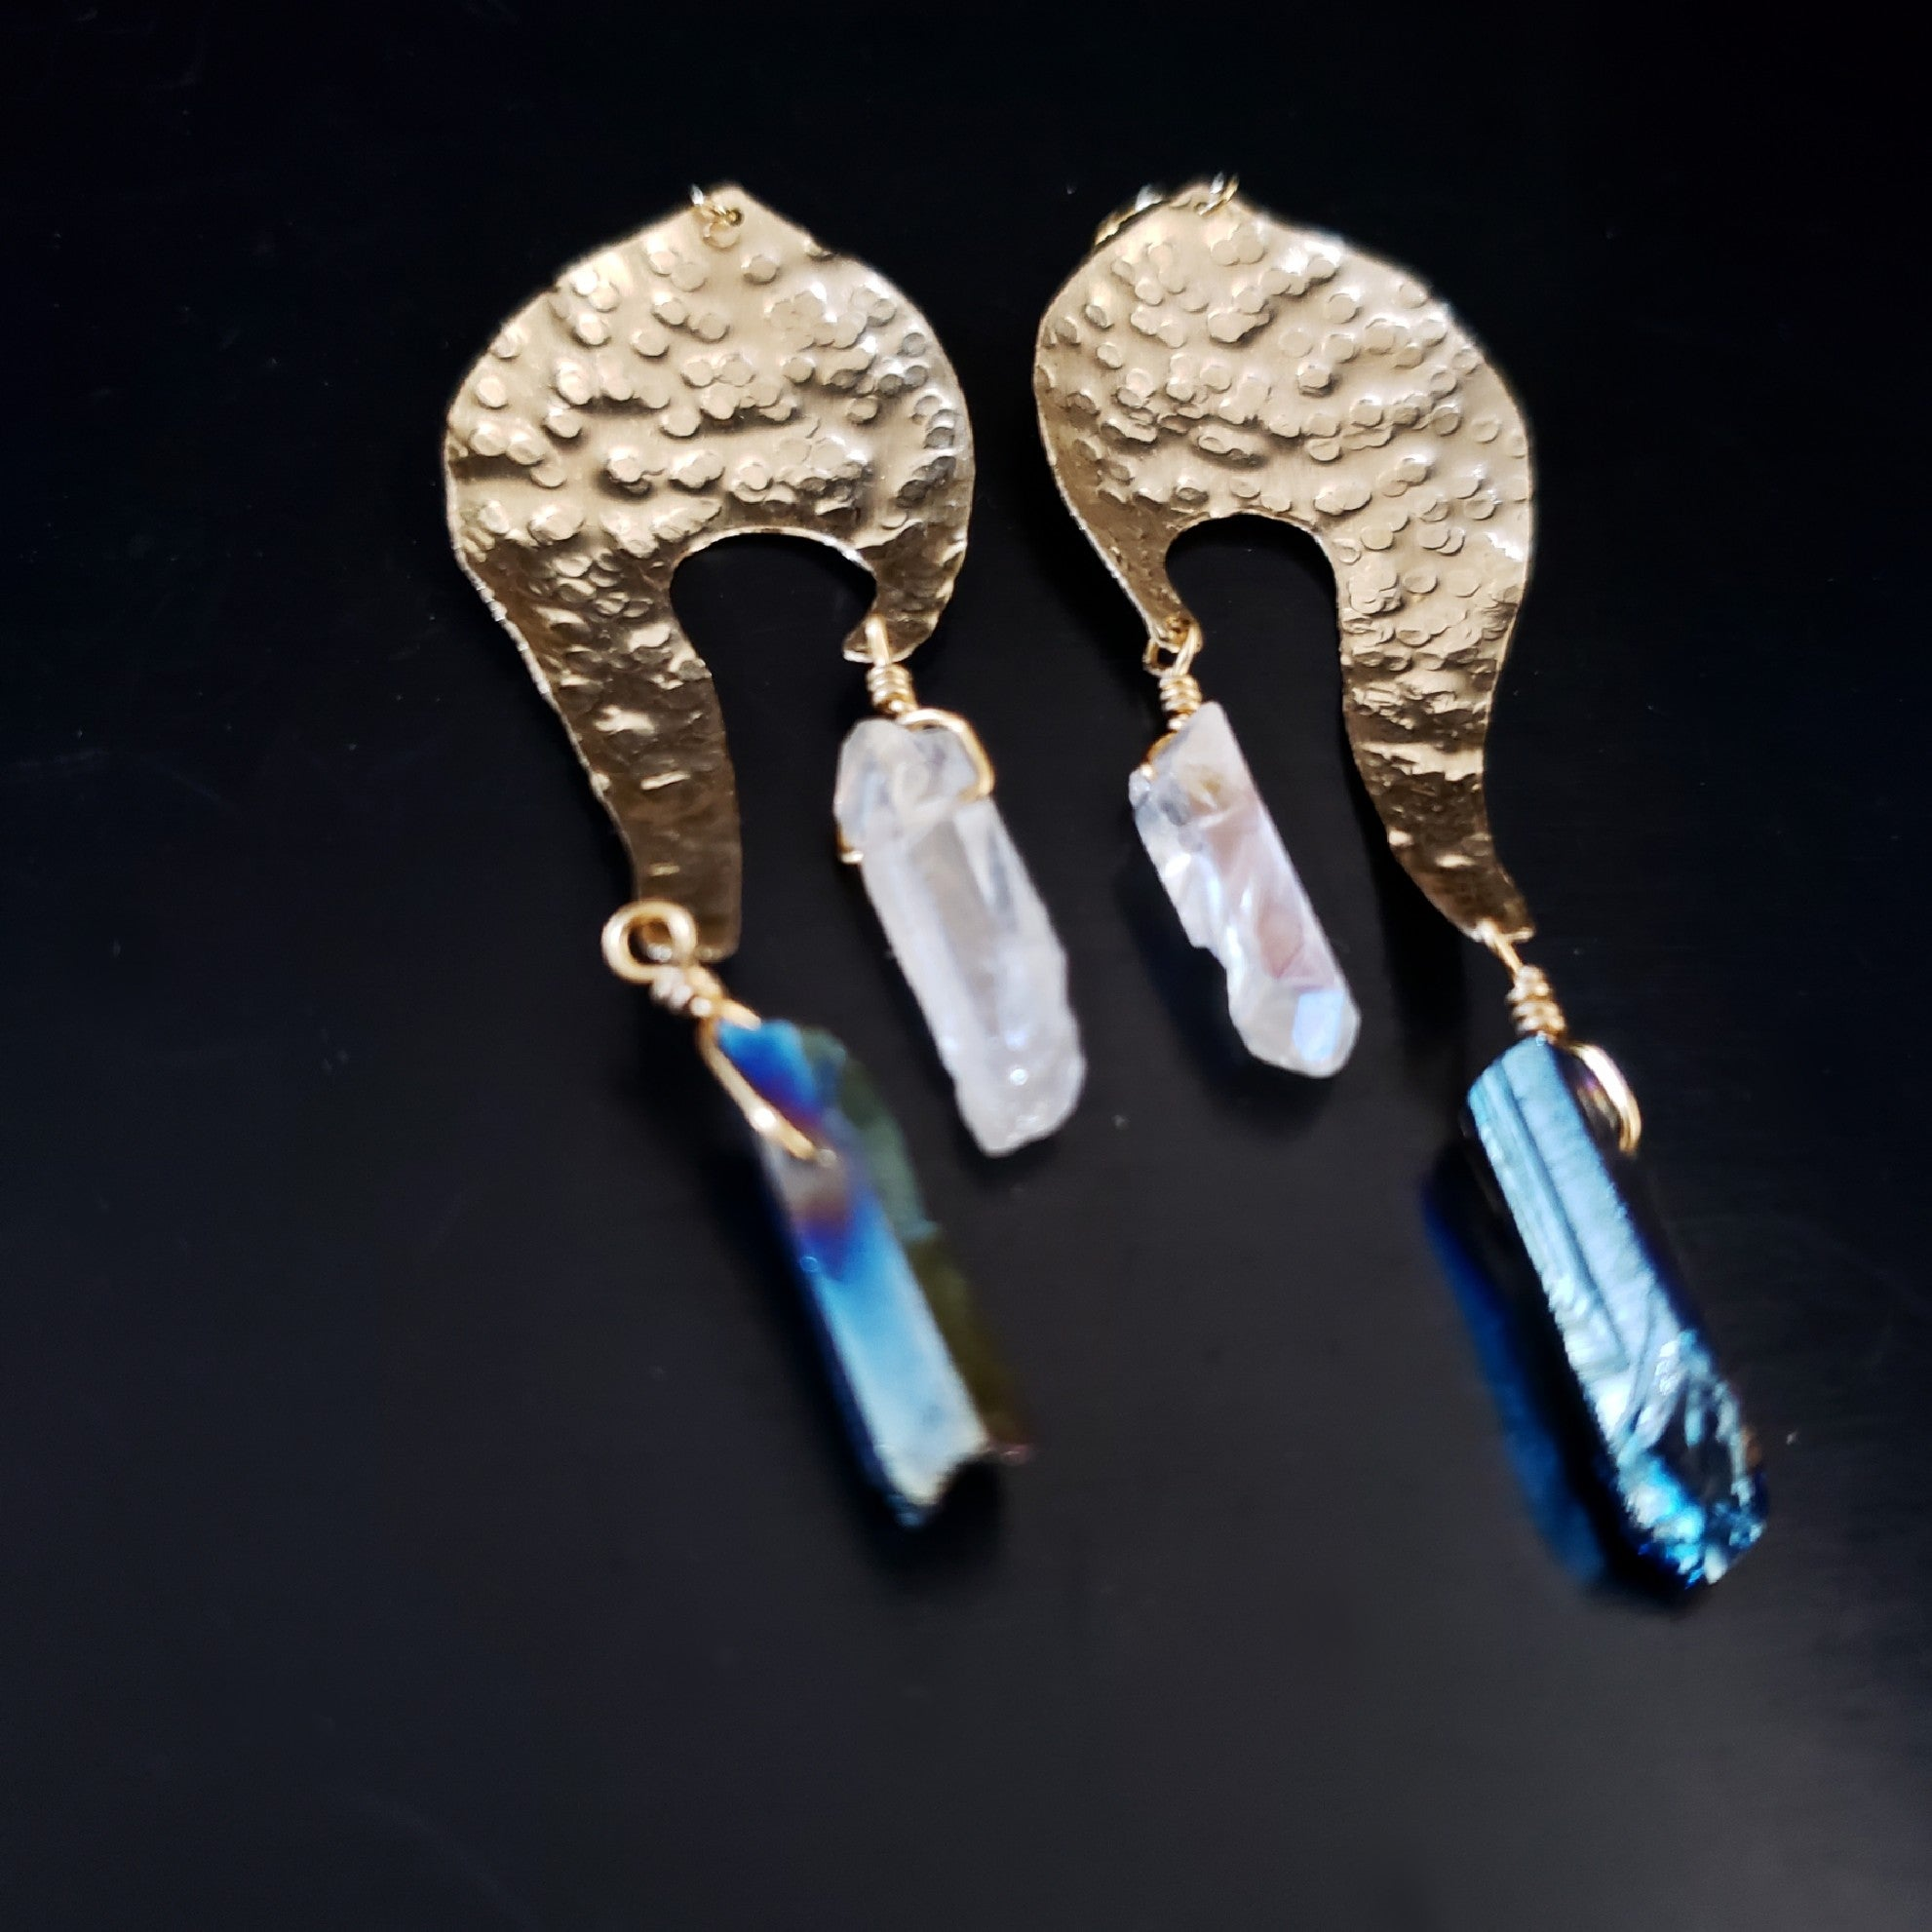 Textured brass and quartz earrings